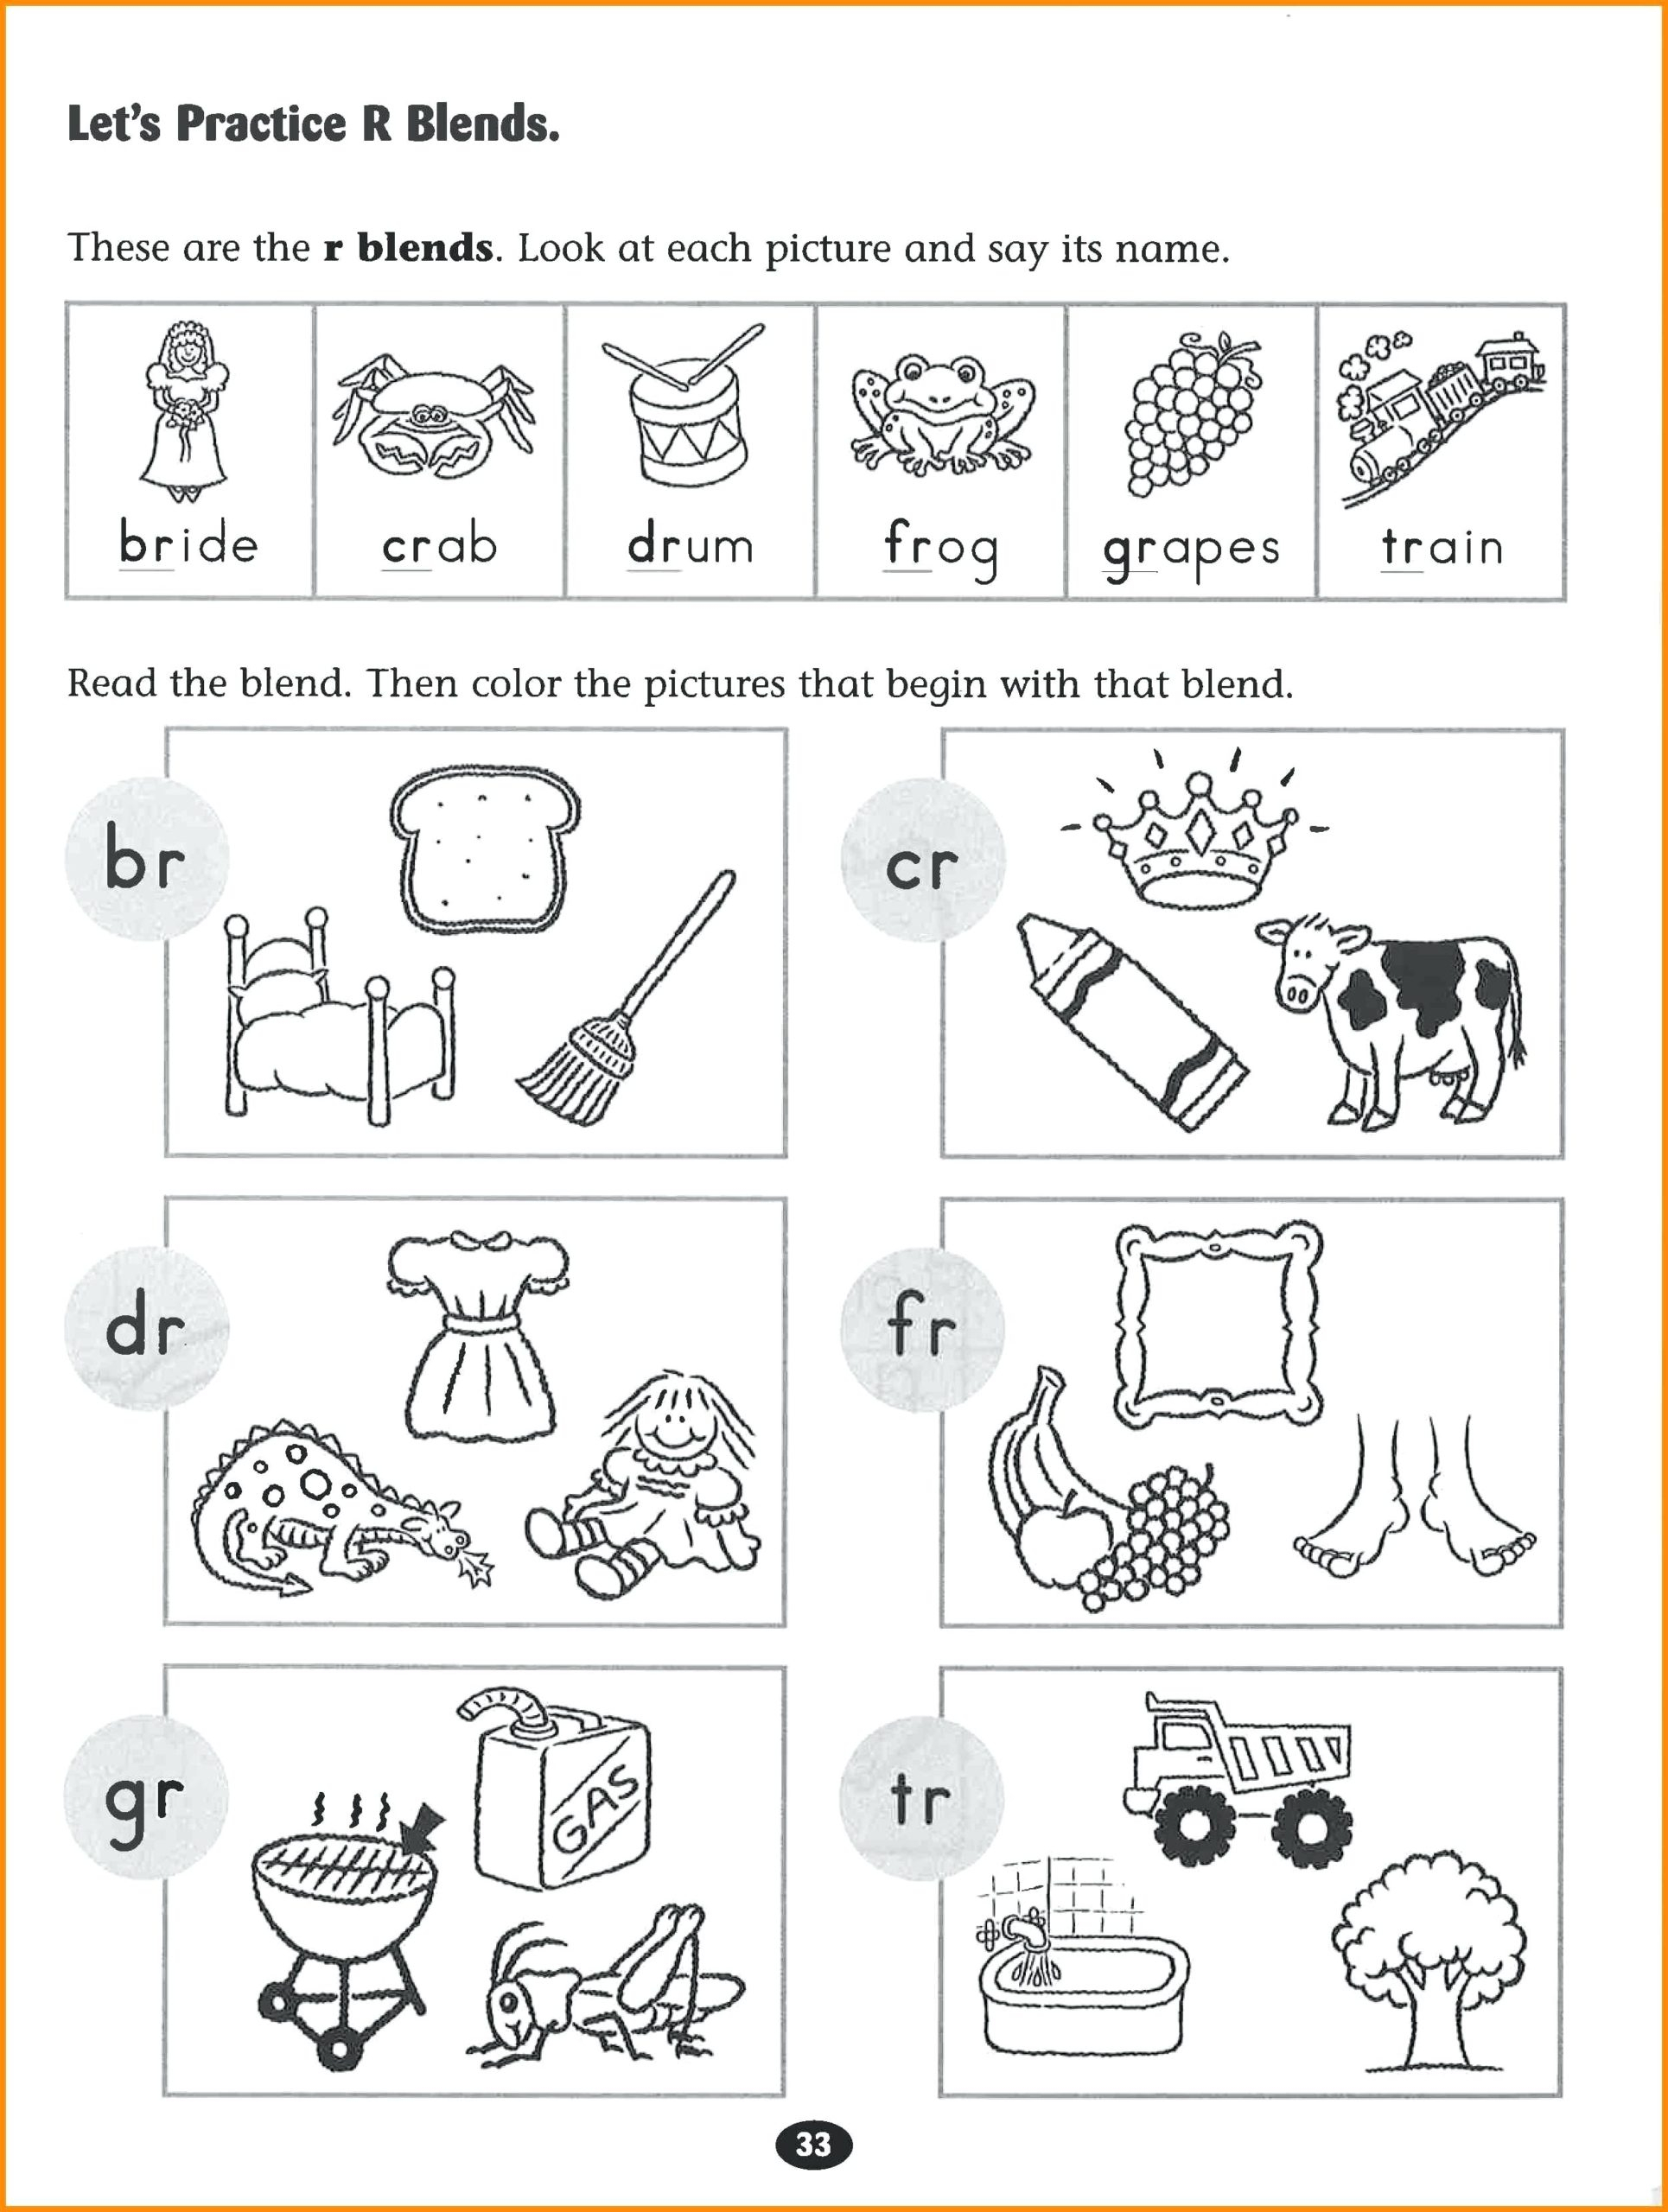 1St Grade : Alphabet Sounds For Kindergarten Free Phonics intended for Alphabet Phonics Worksheets For Kindergarten